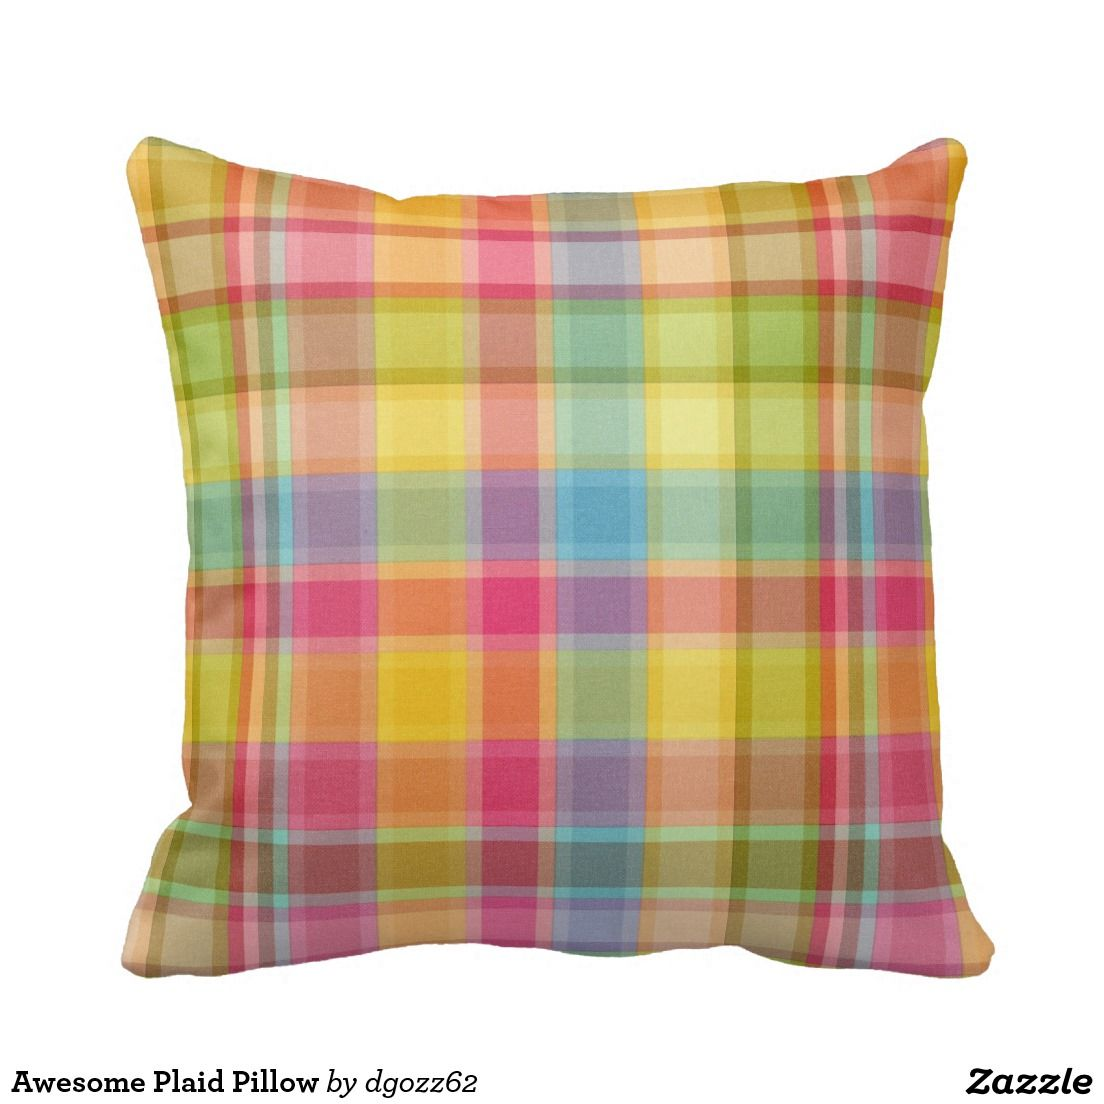 Awesome Plaid Pillow